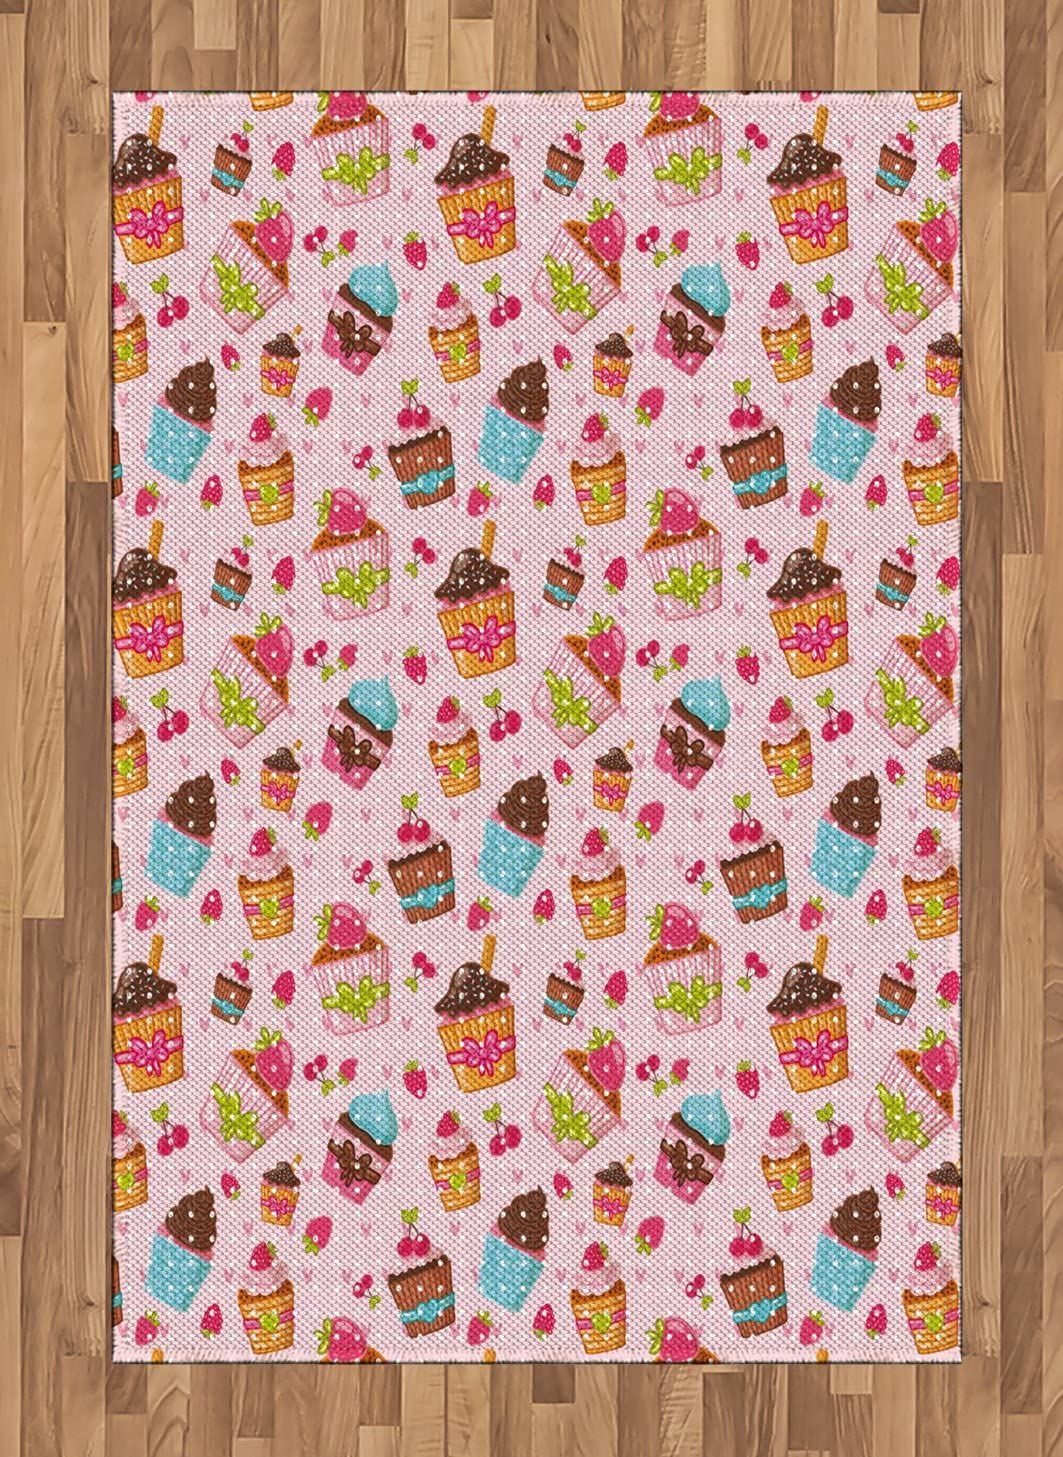 Ambesonne Pink Area Rug, Kitchen Cupcakes Muffins Strawberries and Cherries Food Eating Sweets Print, Flat Woven Accent Rug for Living Room Bedroom Dining Room, 4' X 5.7', Pale Pink and Brown